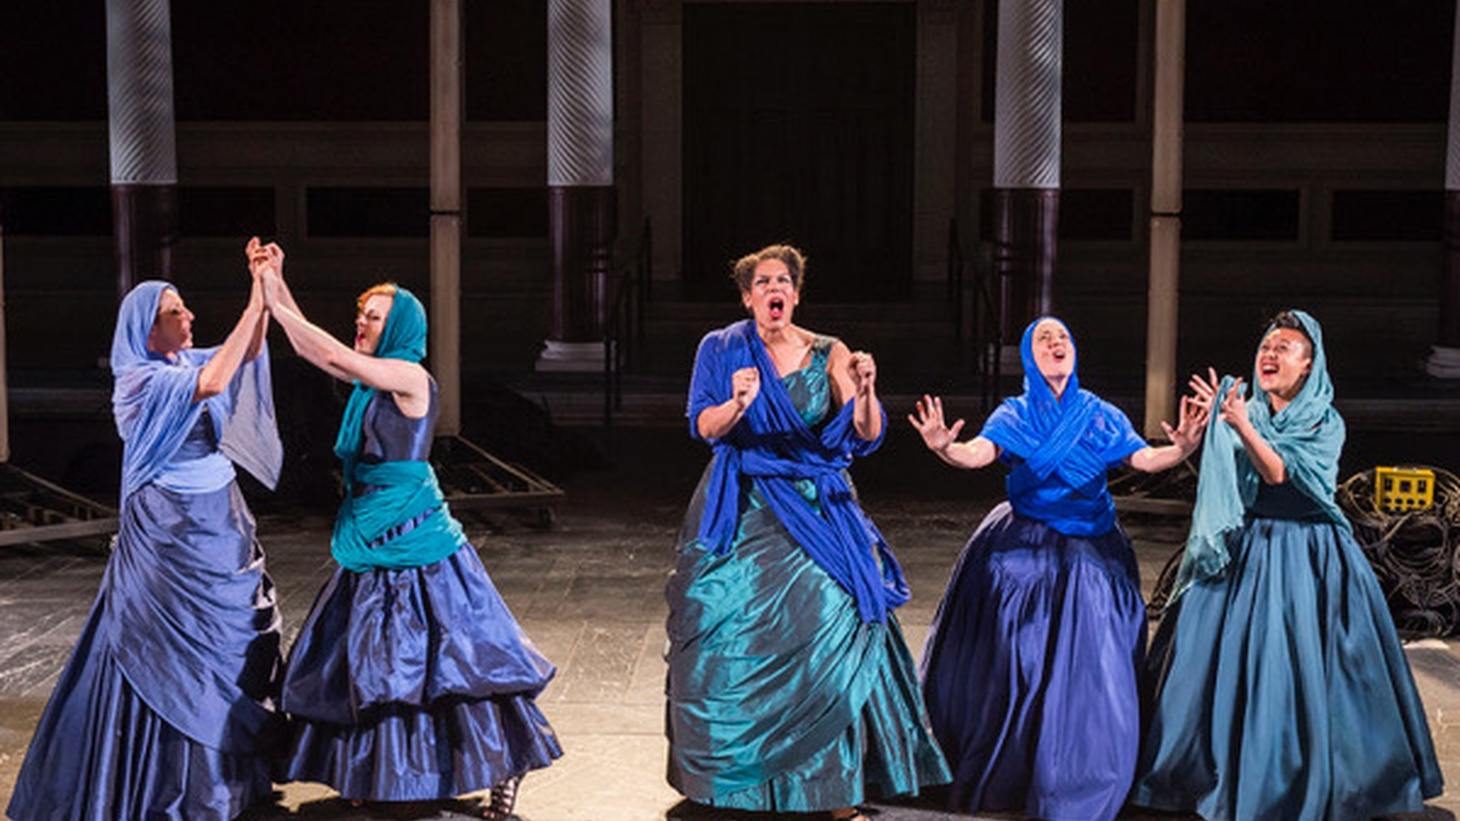 Each fall the Getty opens its outdoor amphitheater in Malibu to a theater company to produce a classic Greek or Roman play for a modern audience. The gods are particularly demanding in Euripedes' final play,  Iphigenia in Aulis , this year's offering, produced by Chicago's Court Theatre.